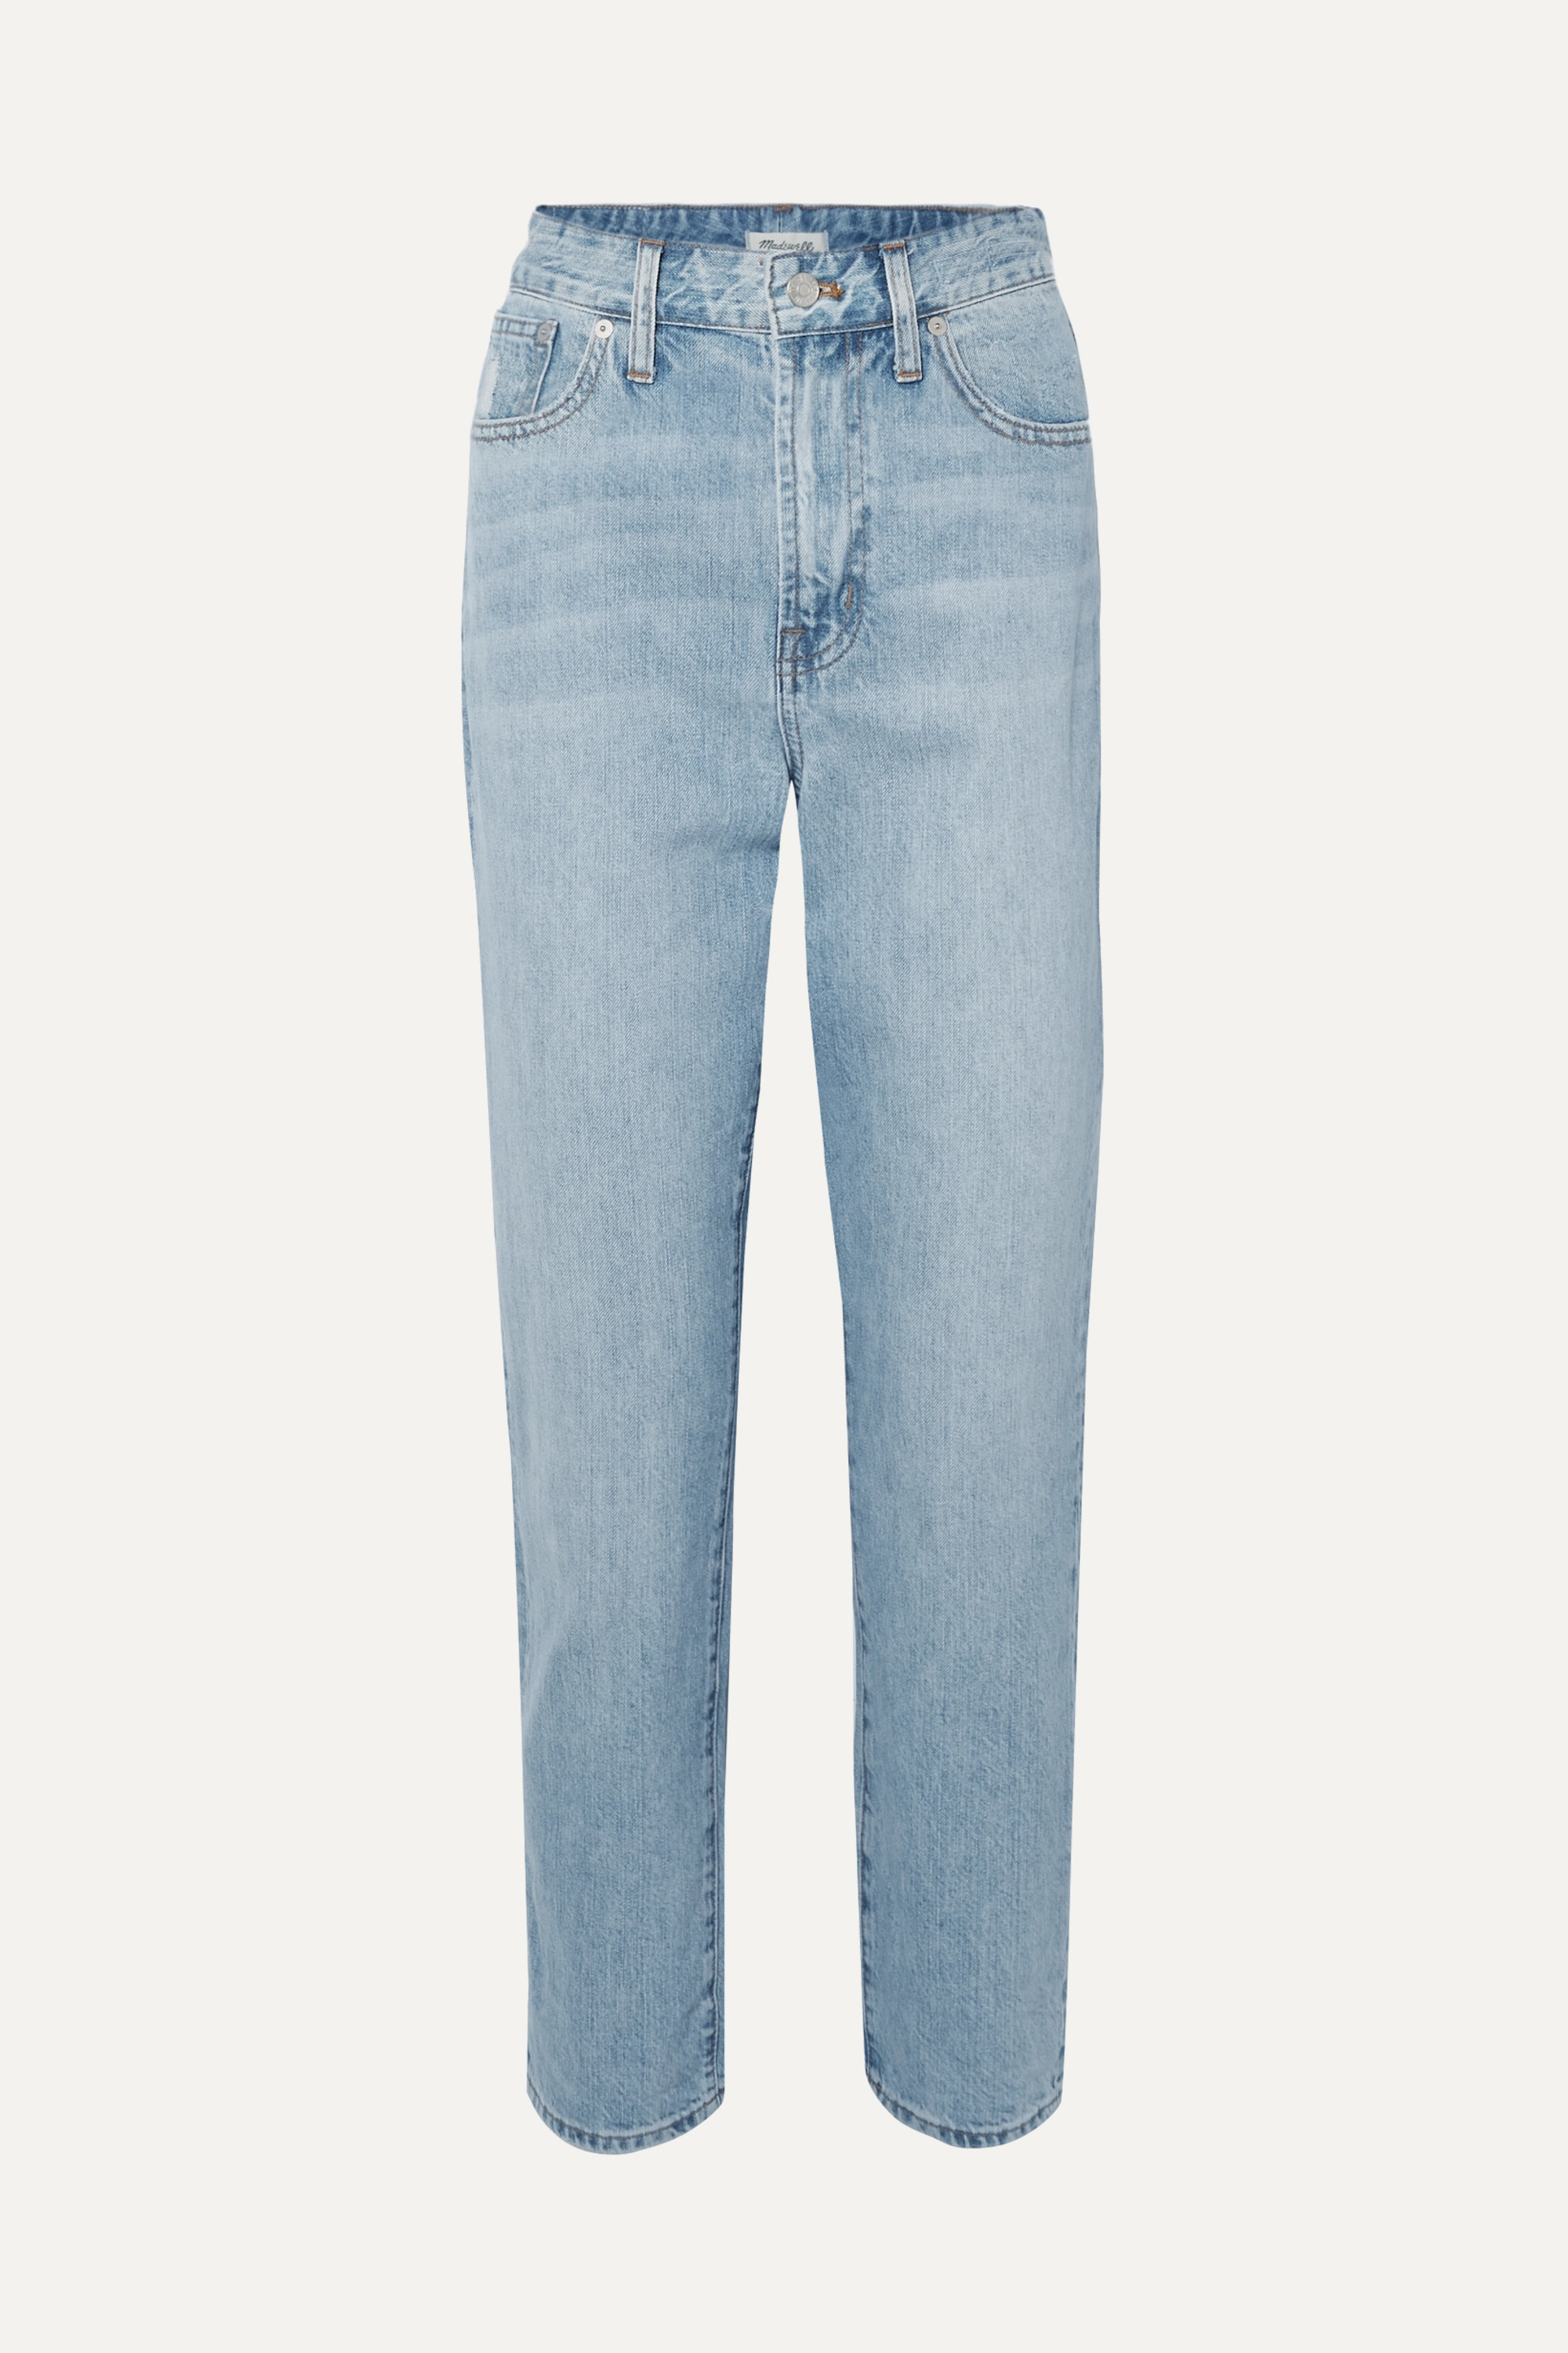 Madewell The Curvy Perfect Vintage high-rise straight-leg jeans